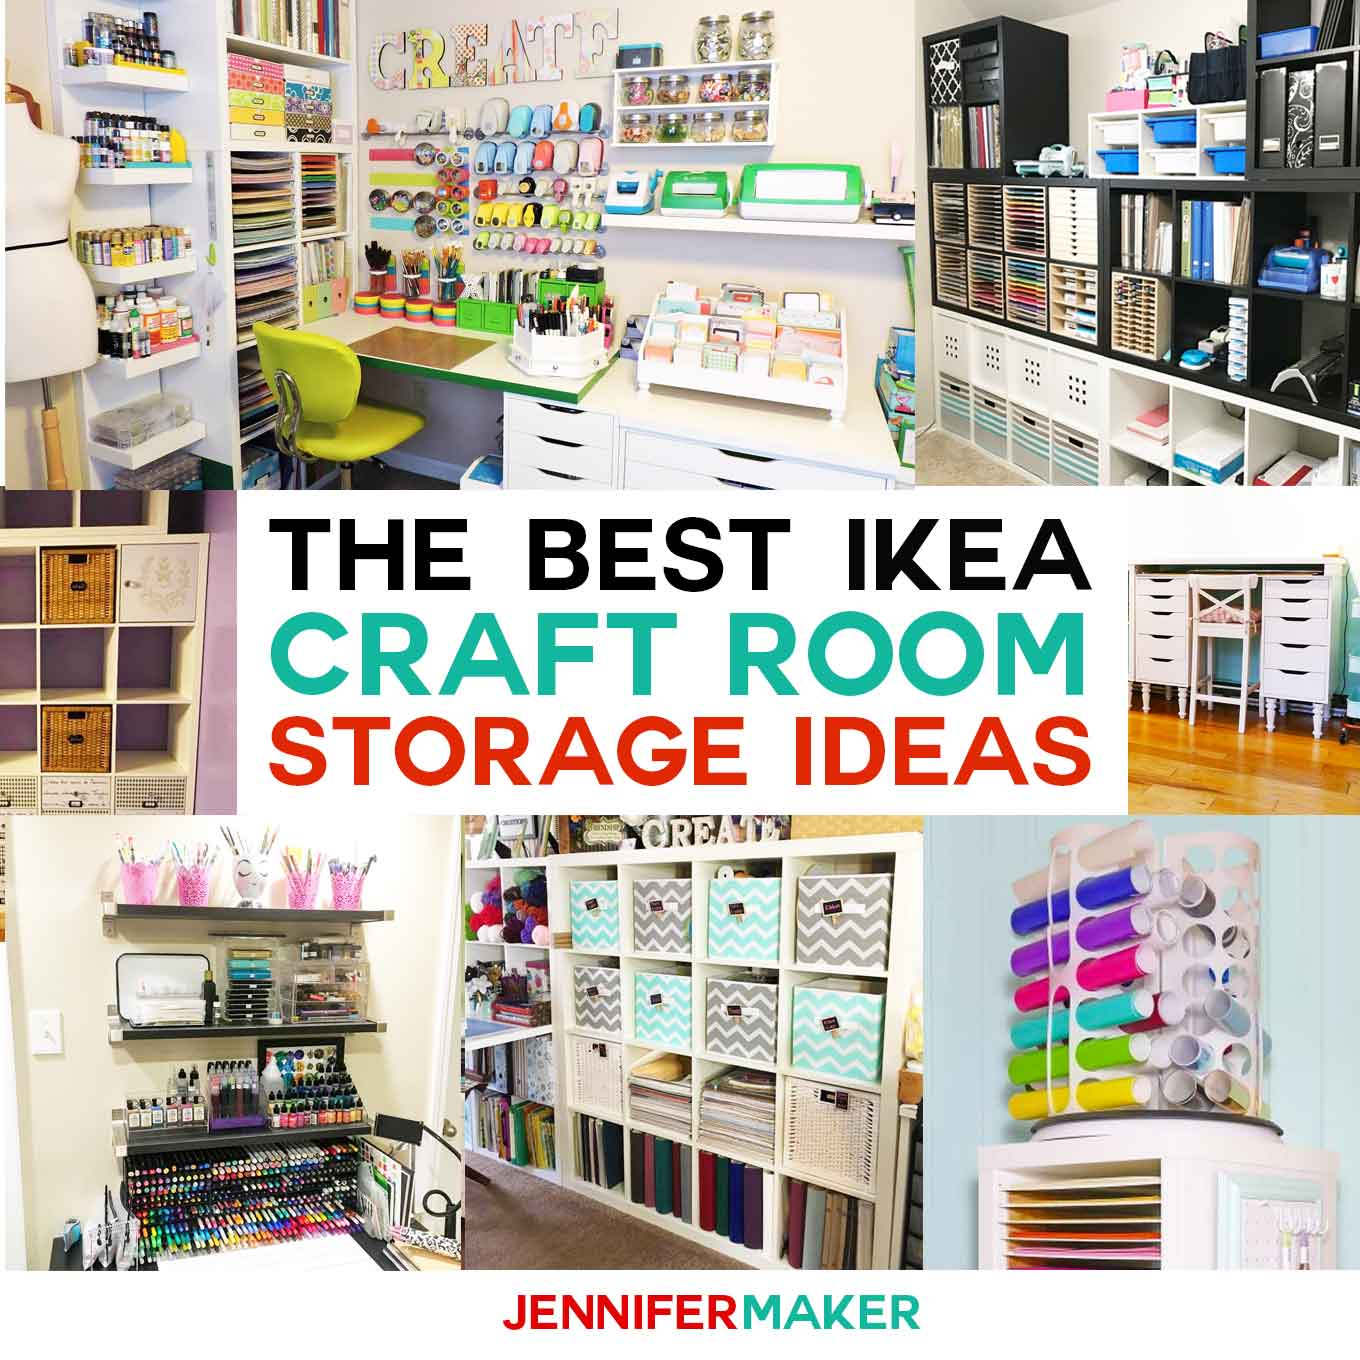 The Best Ikea Craft Room Storage Shelves Ideas Jennifer